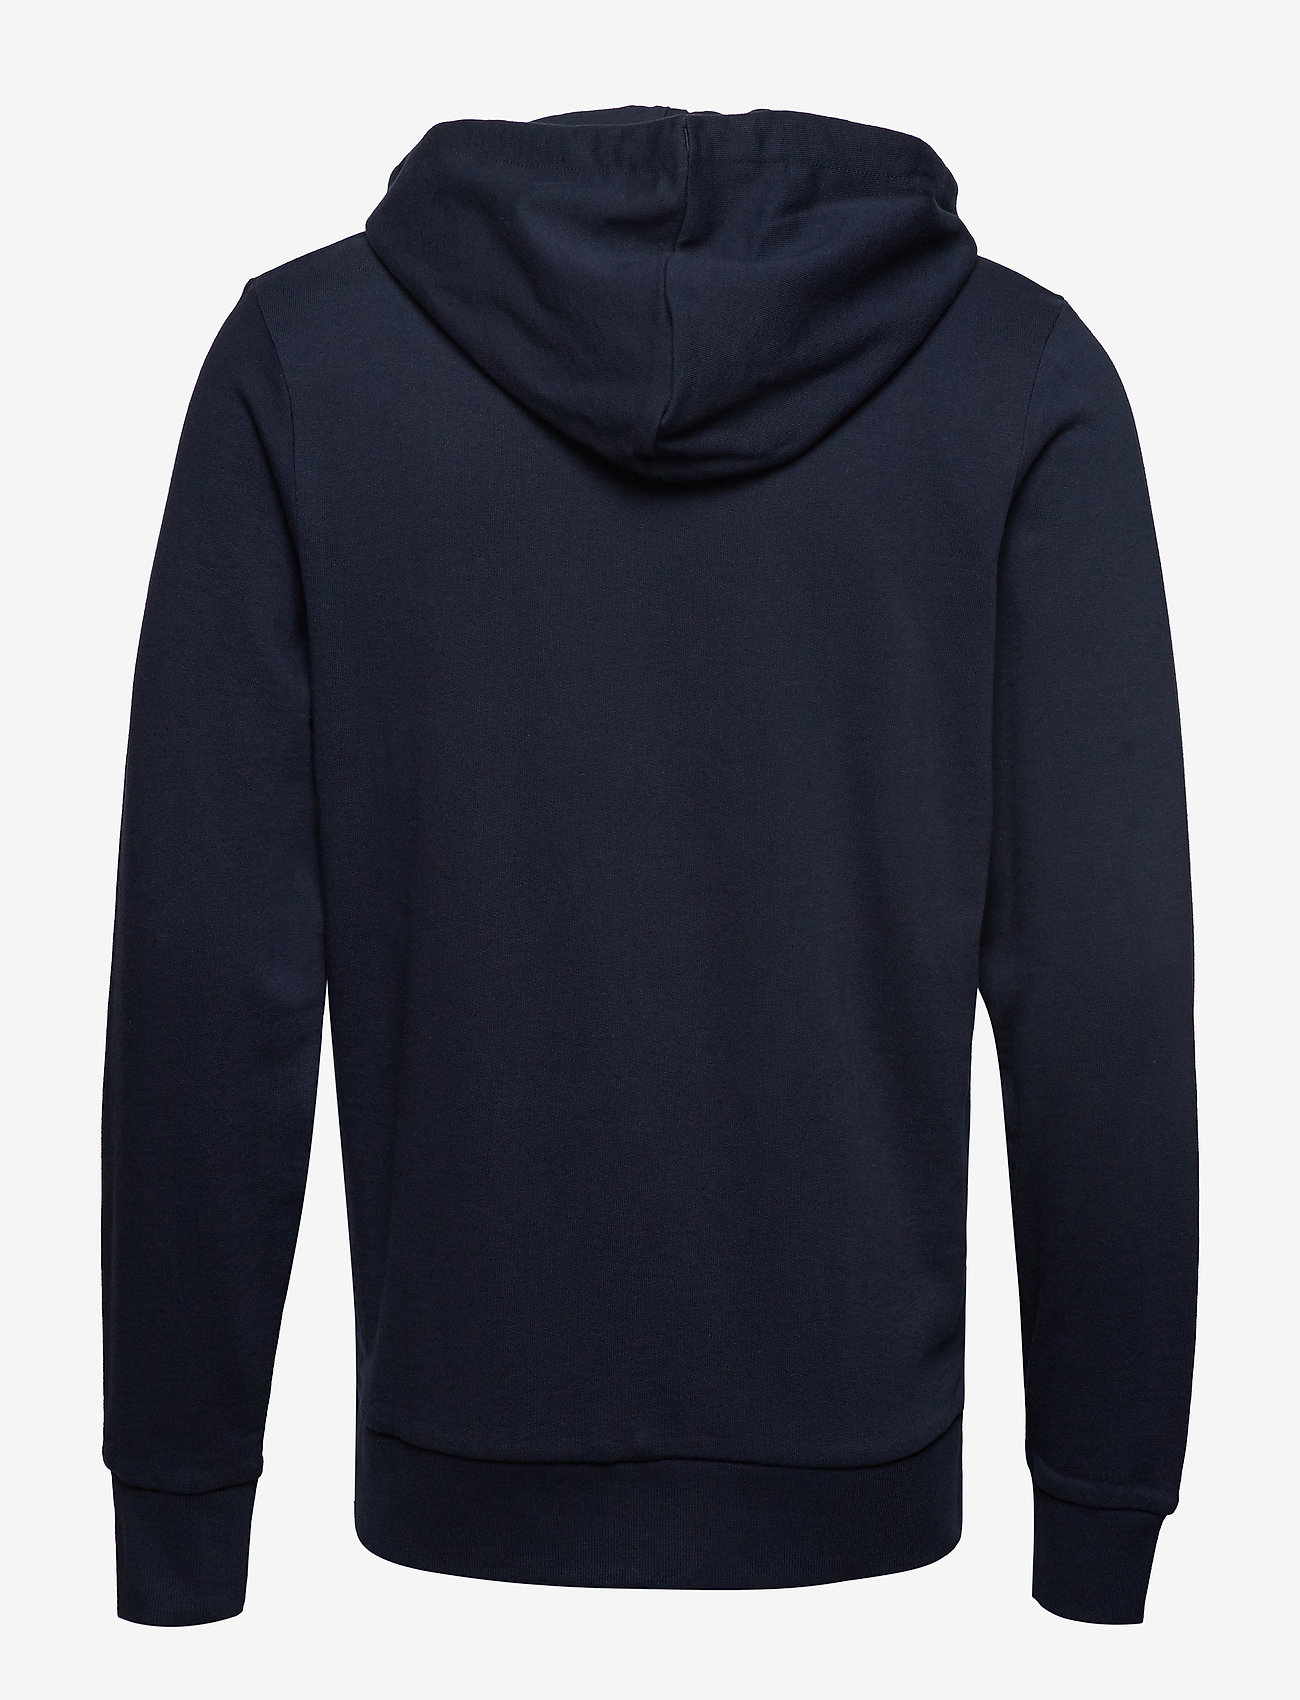 Jack & Jones - JJEHOLMEN SWEAT ZIP HOOD NOOS - basic sweatshirts - navy blazer - 1